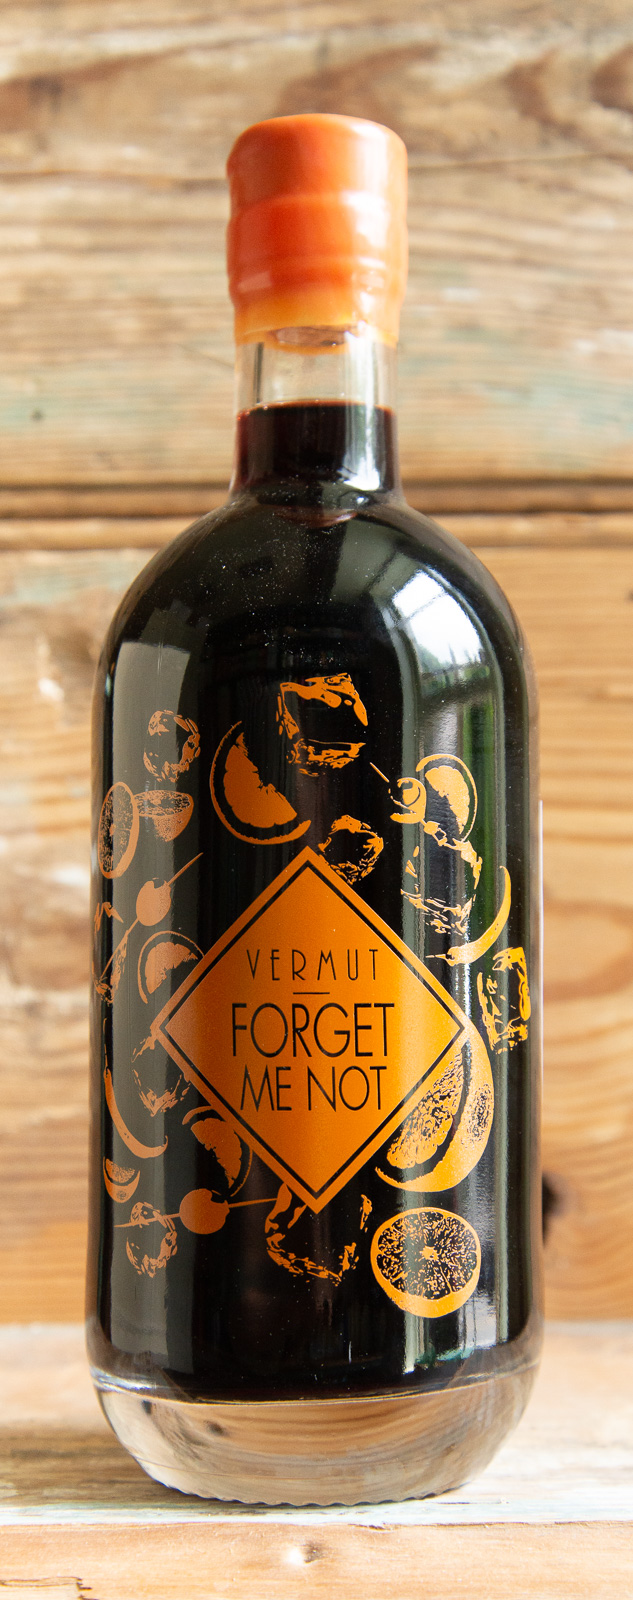 Clos Figueras 'Forget Me Not' Vermut - Origin: SpainRetail: $35.95 | Sale: $32.55'Forget Me Not' is an artisan vermouth made in the style of Reus, with a rigorous selection of the best red wines of Montsant infused with aromatic plants from the surrounding mountains. Enjoy this Vermut in a Manhattan or simply add a twist of orange to bring out the beautiful aromatics and sip by the cozy fire with your loved one. It also makes a great gift for Mother's Day!Cariñena | Garnacha